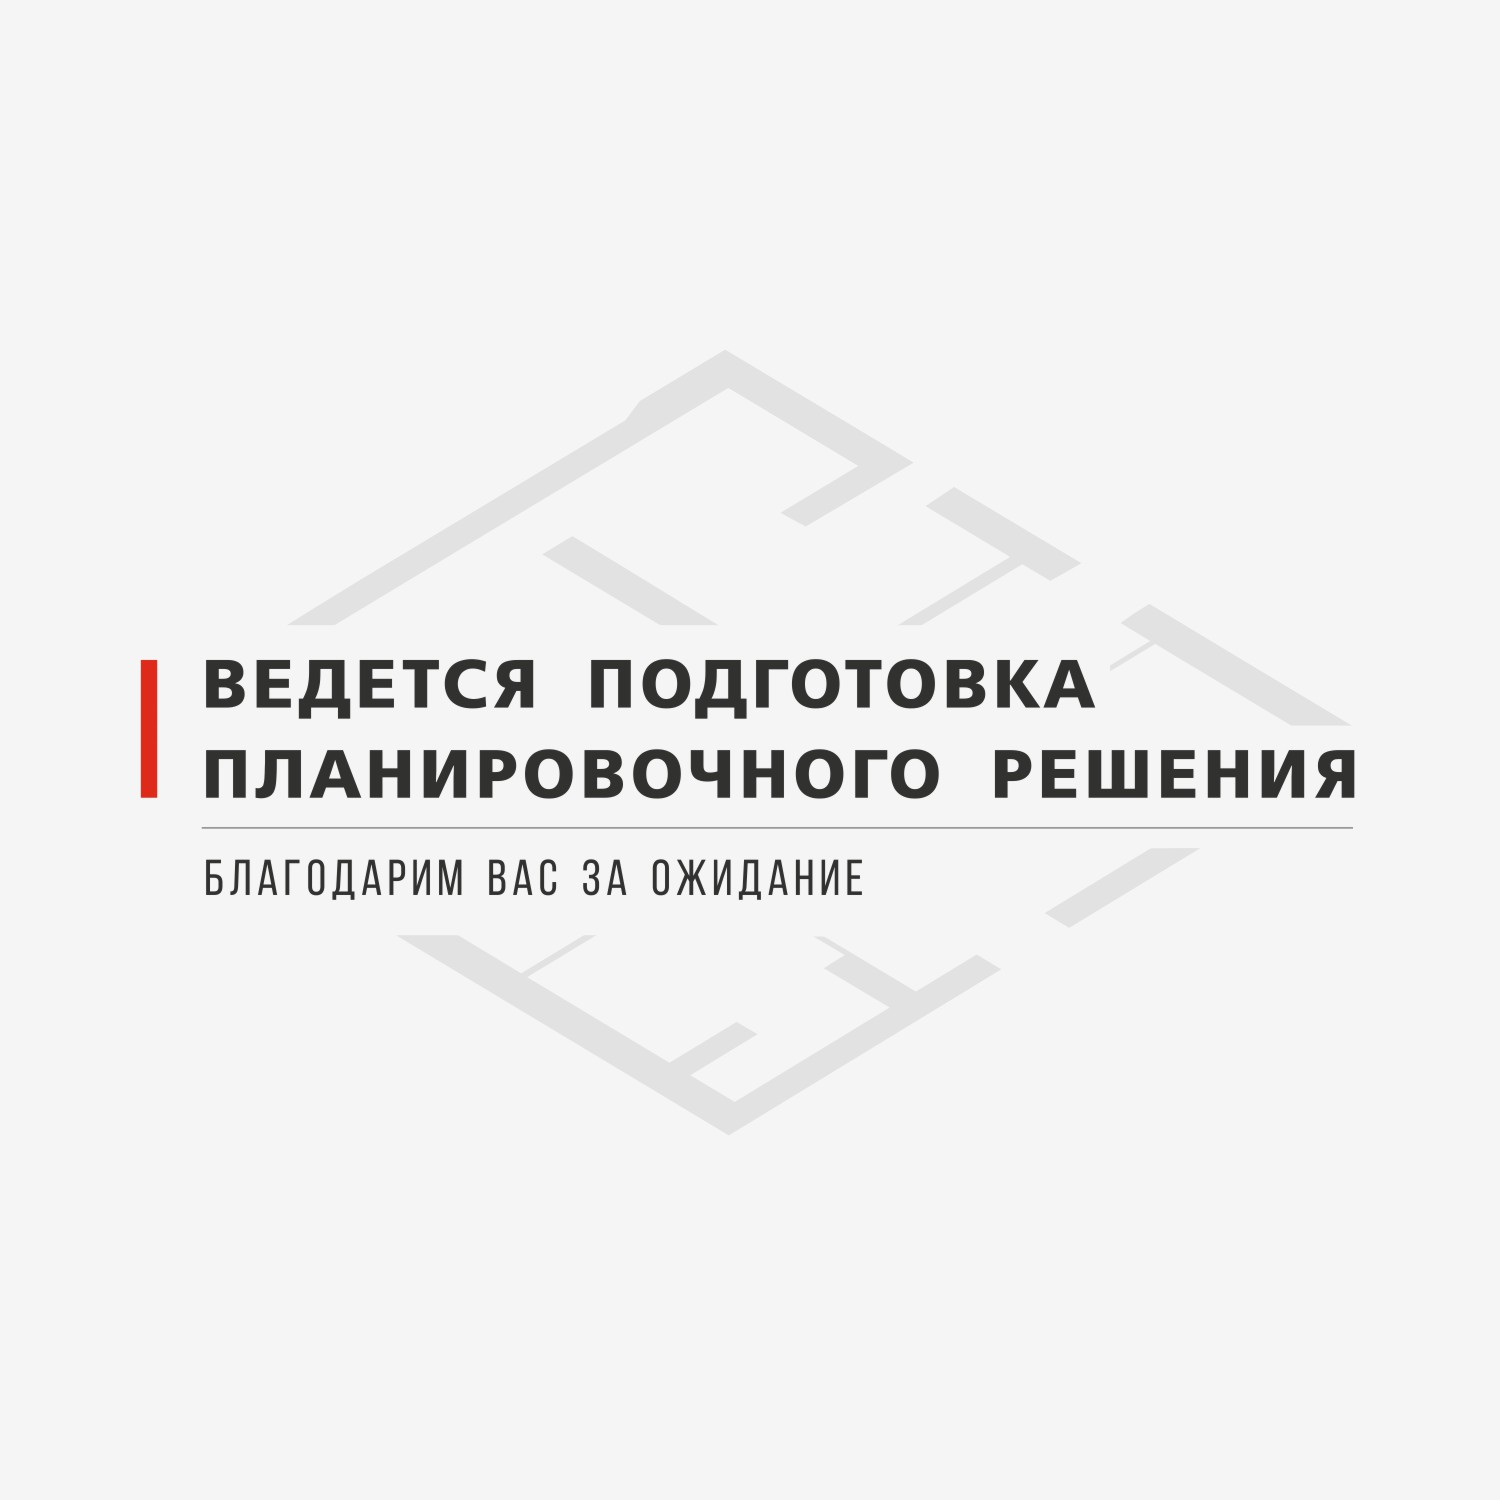 Купить однокомнатную квартиру в новостройке г Москва, ул Лобачевского, д 120 - World Real Estate Service «PUSH-KA», объявление №189296